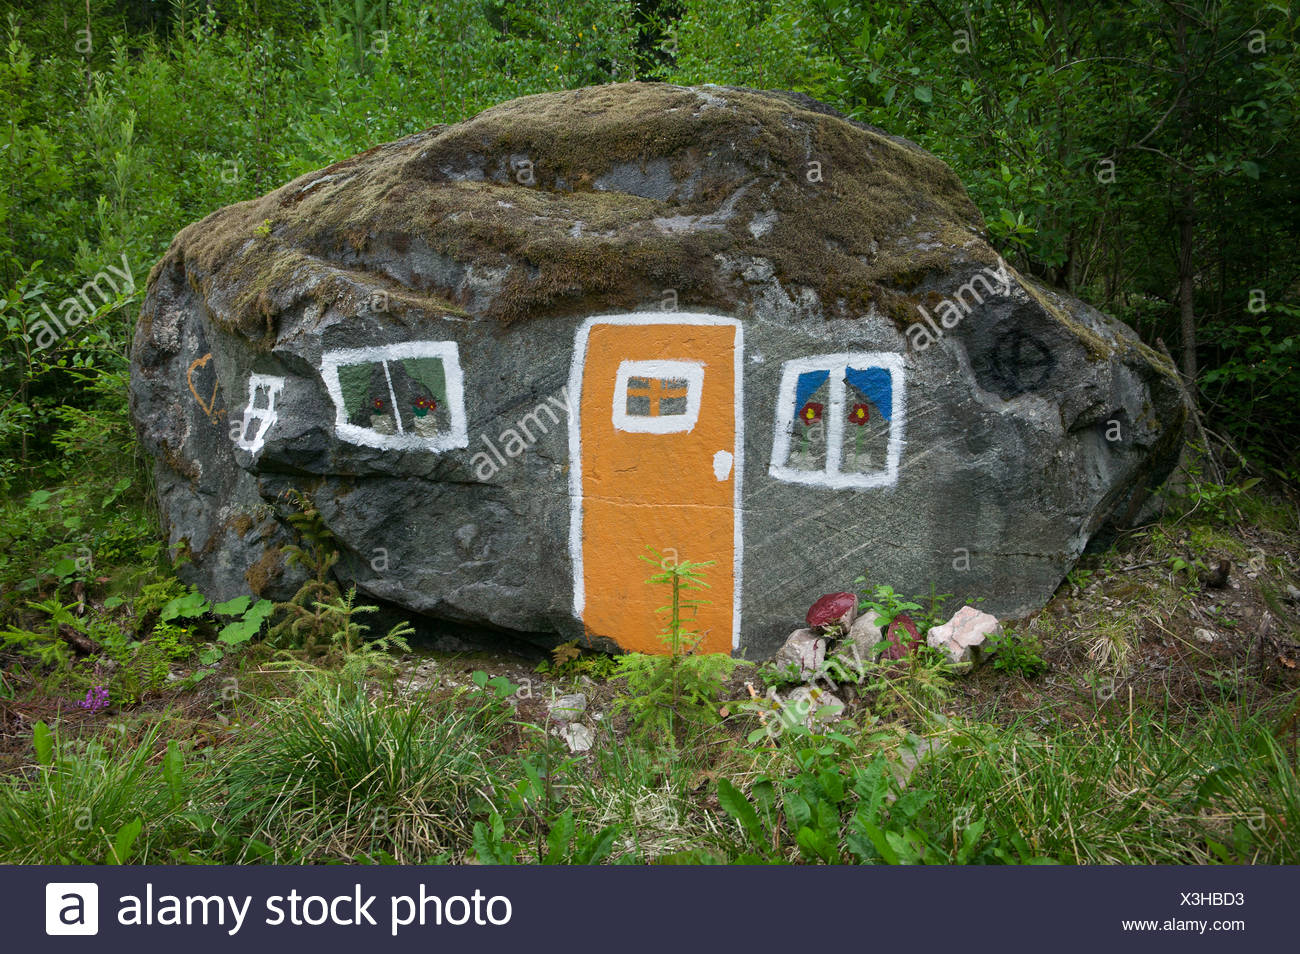 House painted on rock - Stock Image